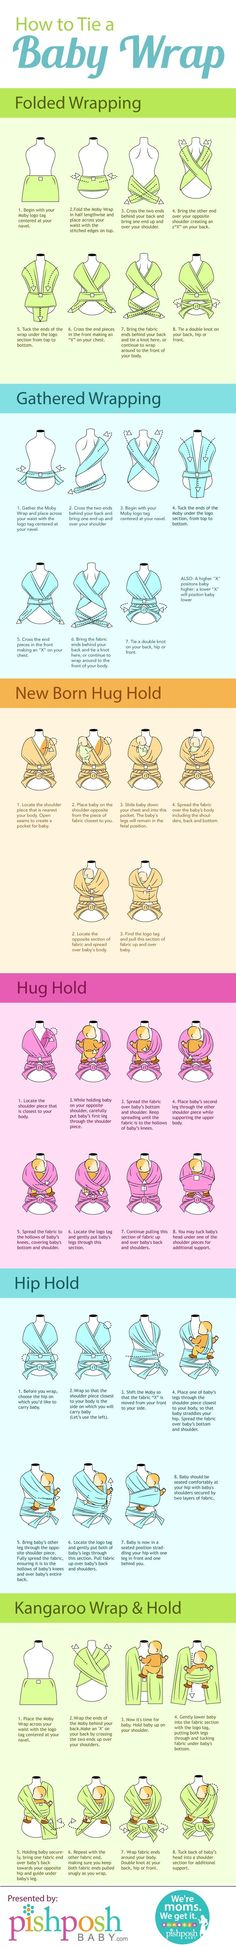 baby wrap tips hold your newborn babies tips tipsographic